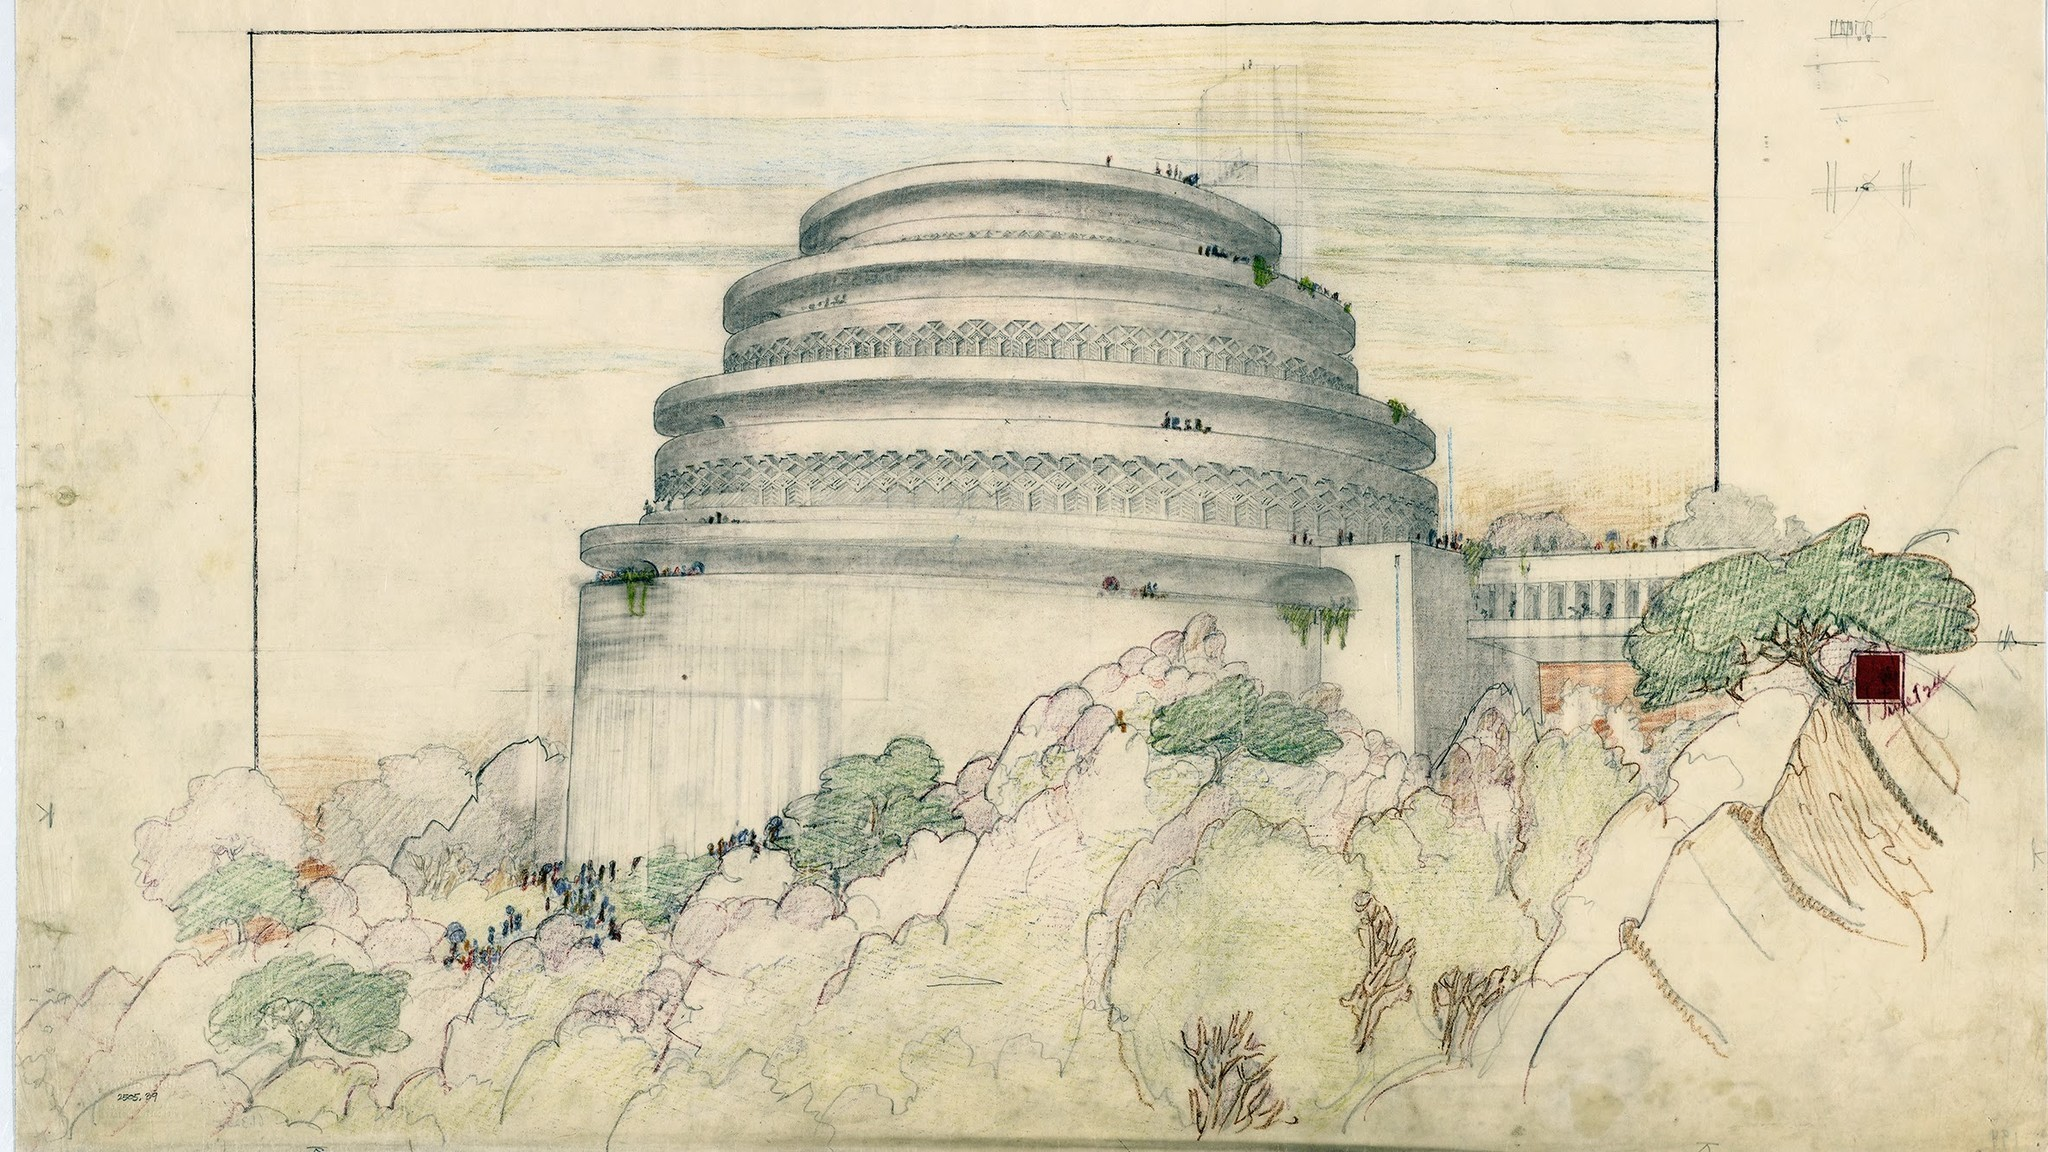 Only about half of Frank Lloyd Wright's designs were built. This drawing was for a scenic overlook and planetarium atop Maryland's Sugarloaf Mountain, a 1920s project that was never built. The drawing is part of the exhibit at New York's Metropolitan Museum of Art.